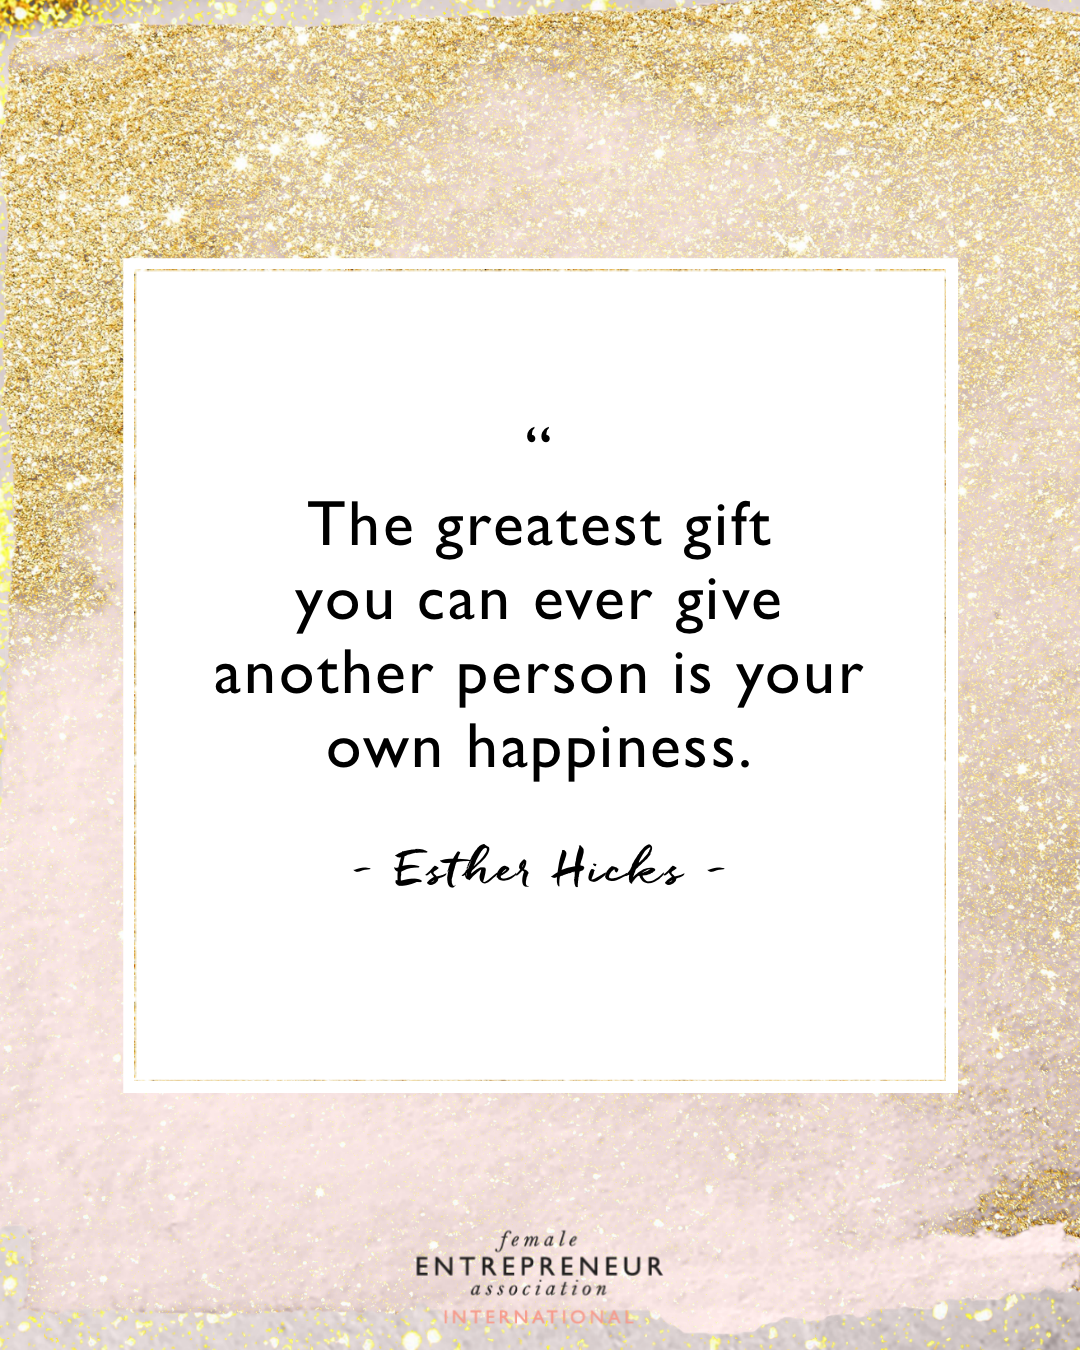 The Best Way To Take Care Of Others Is To Focus On Taking Care Of Yo Inspirational Quotes For Women Inspiring Quotes About Life Female Entrepreneur Association